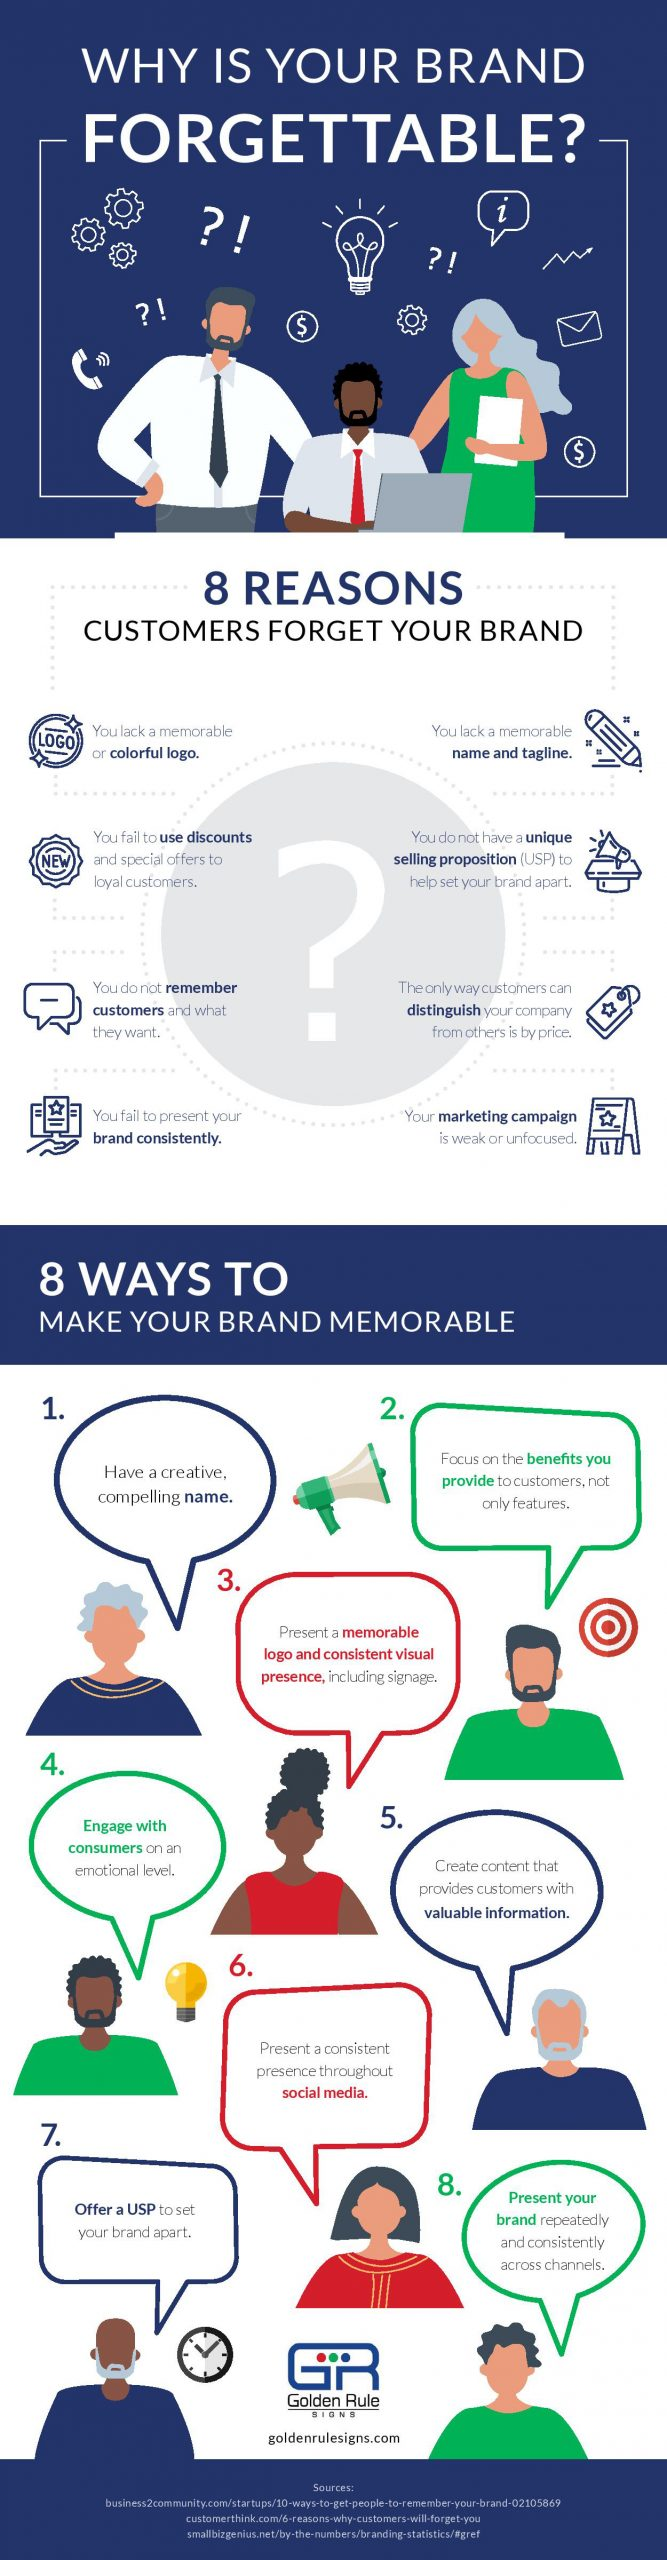 why is your brand forgettable infographic